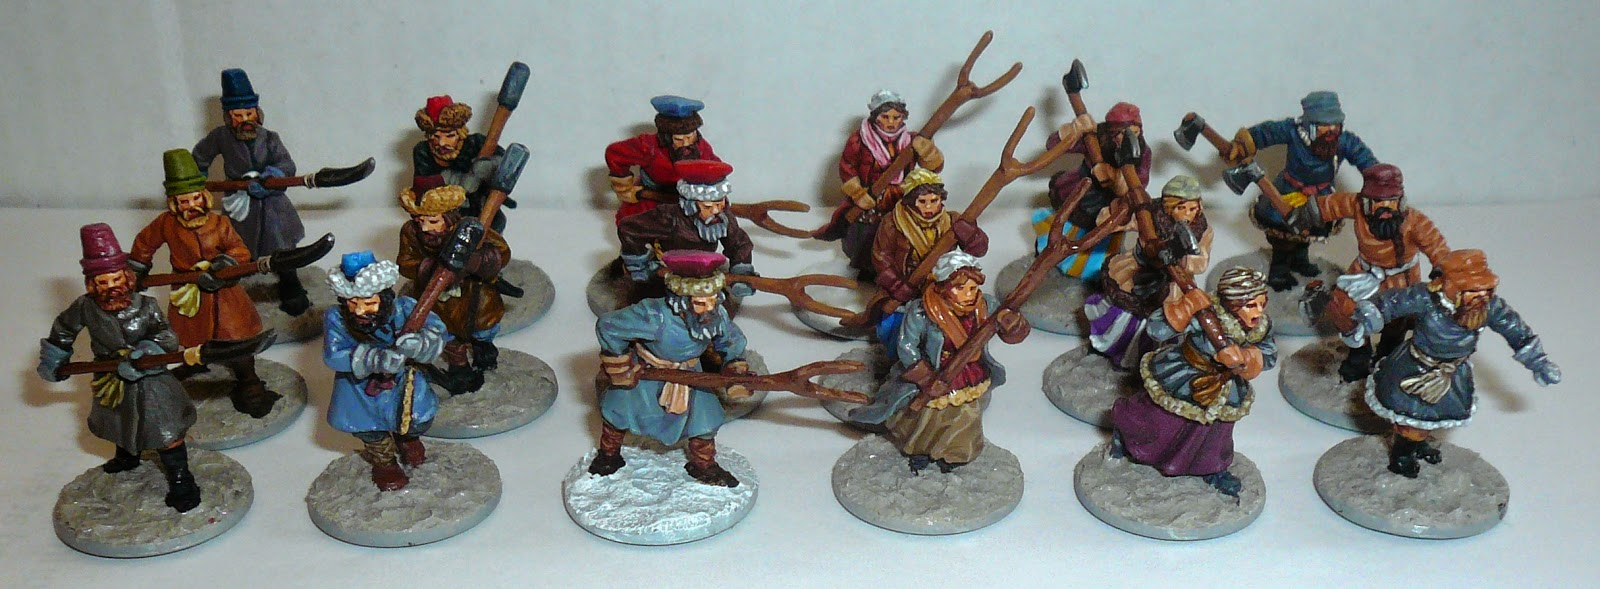 Perry miniatures - Russian Peasants